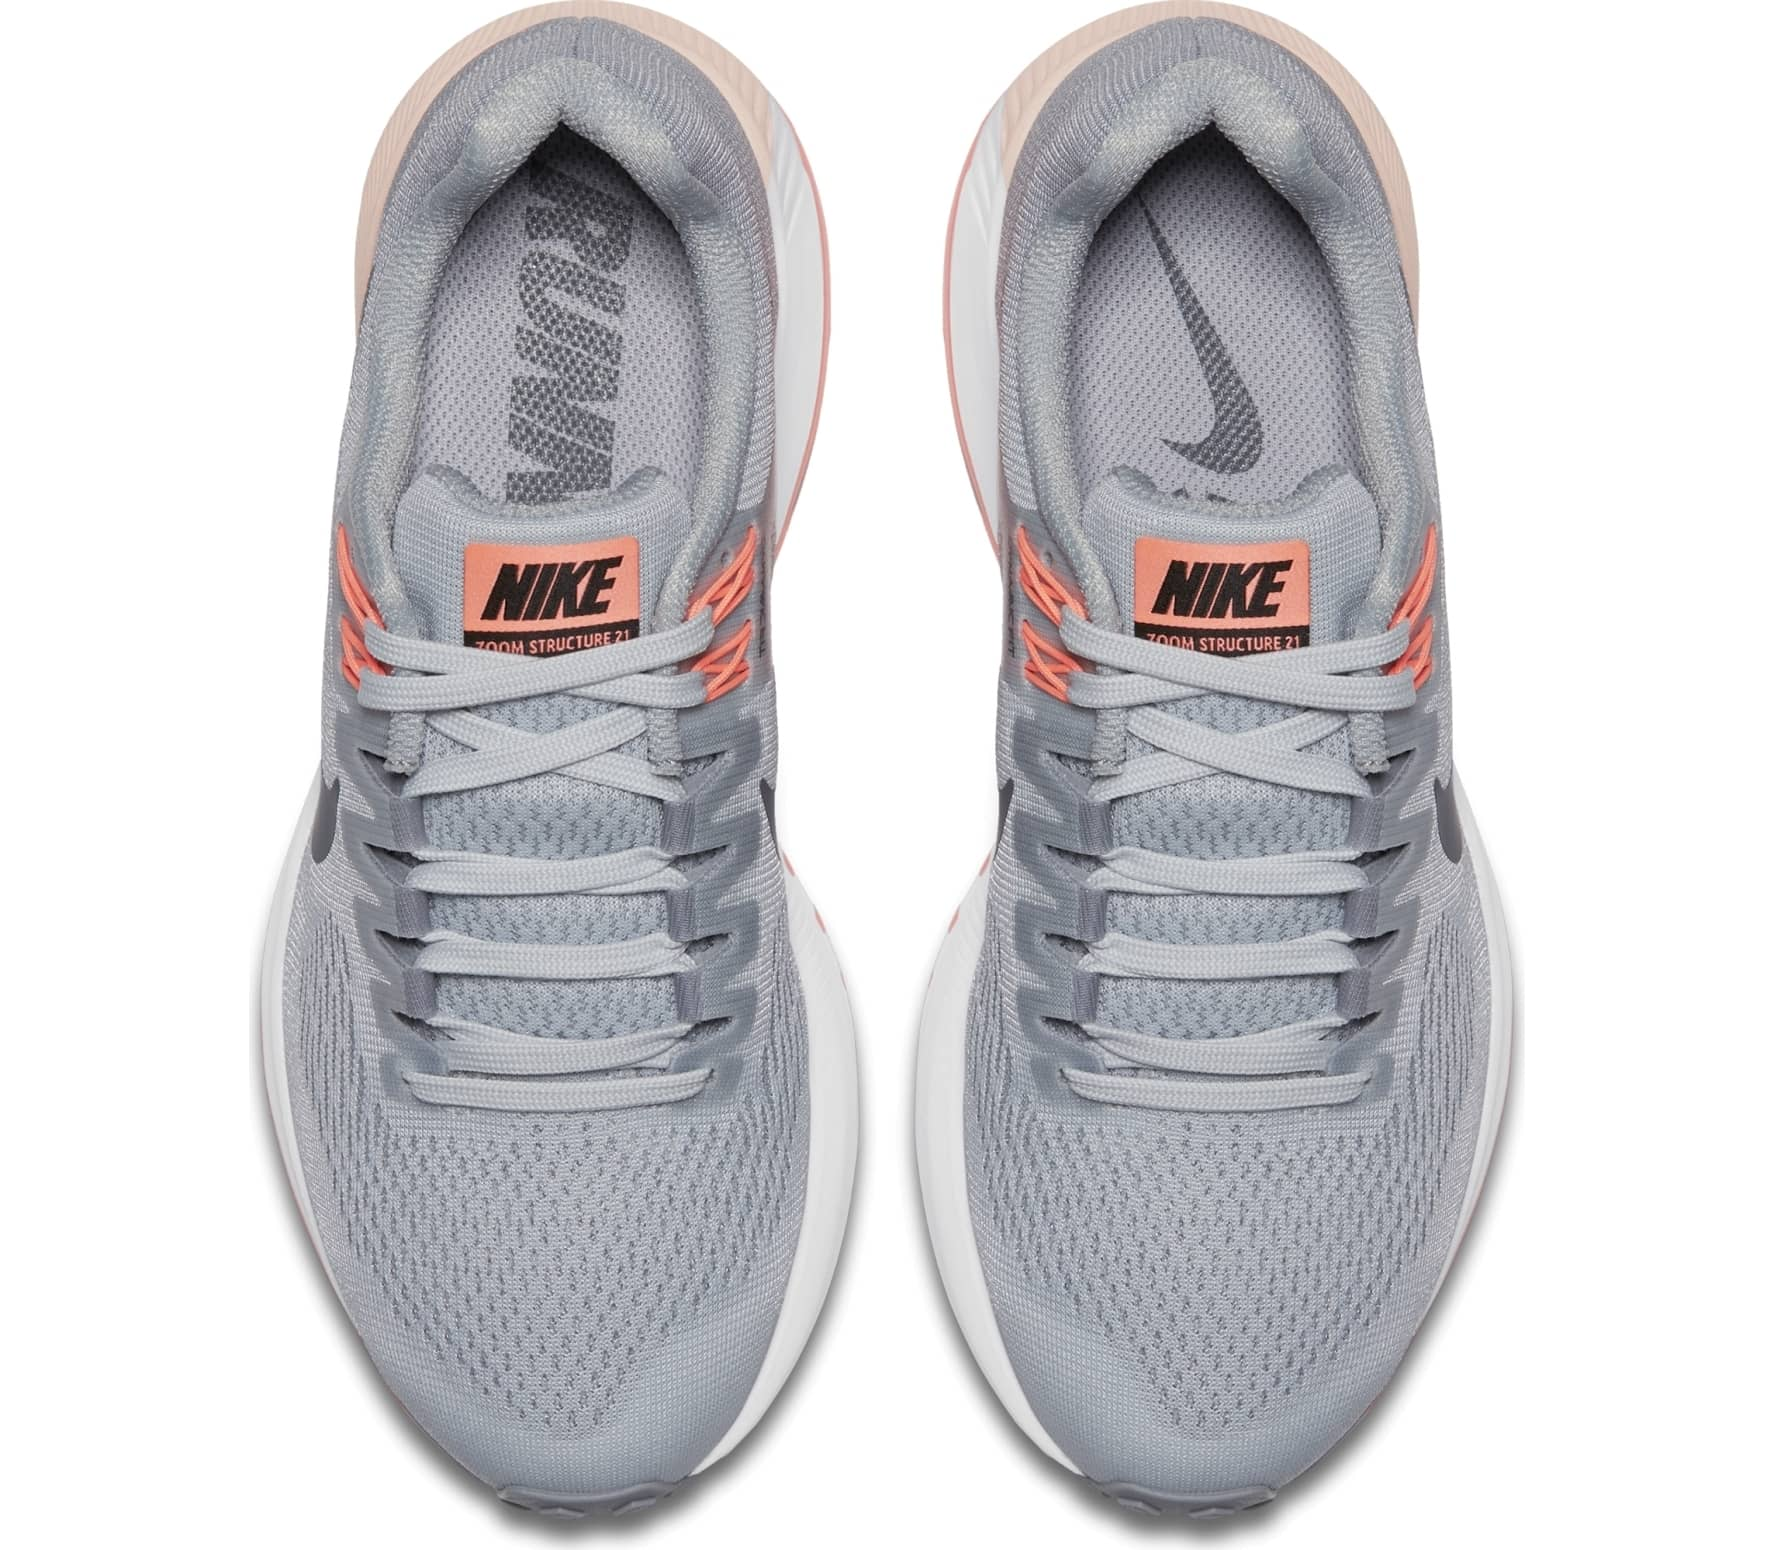 innovative design 94e5b 04d47 Nike - Air Zoom Structure 21 womens running shoes (grey)